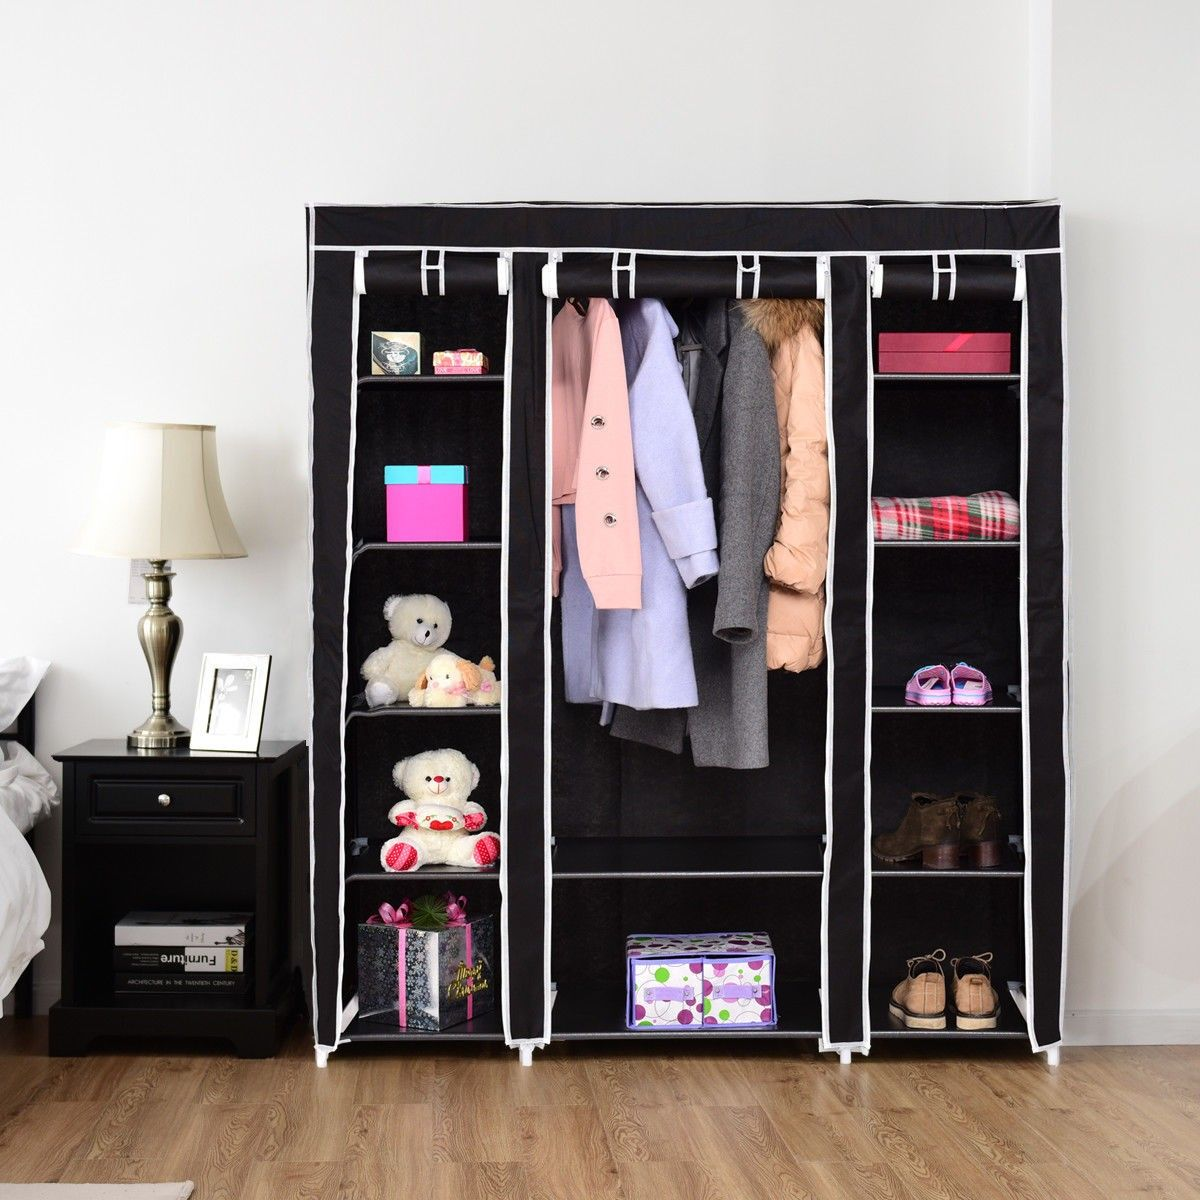 Costway New Triple Canvas Wardrobes Cupboard Hanging Clothes Rail Storage Shelves Black Our Storage Closet Organization Closet Storage Cabinets Portable Closet